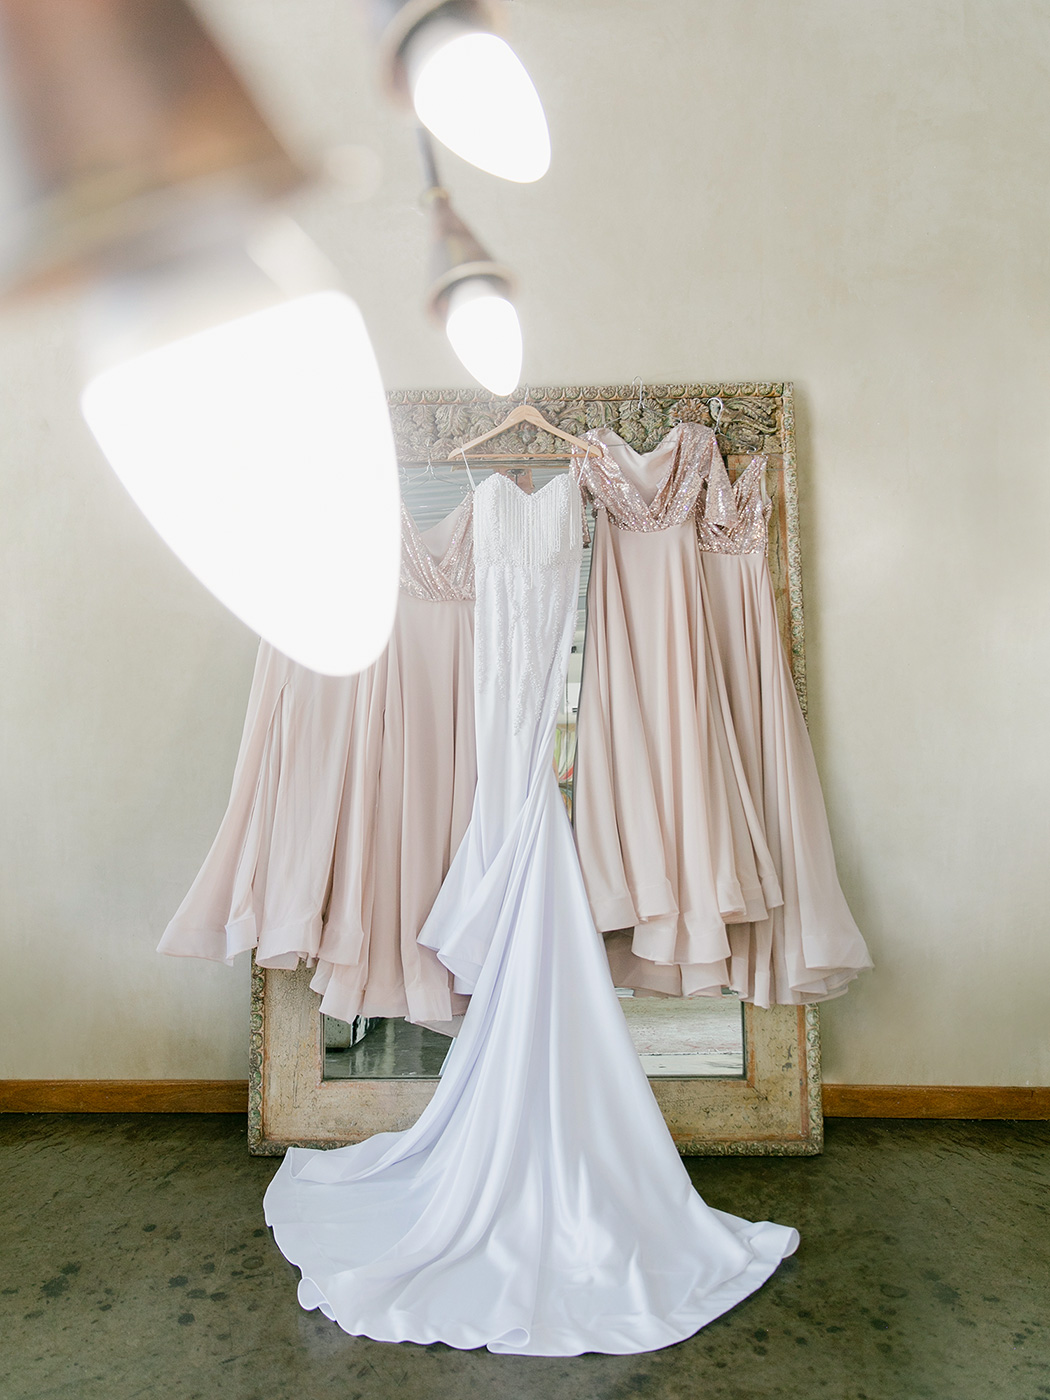 Wedding Dress | Rensche Mari Photography